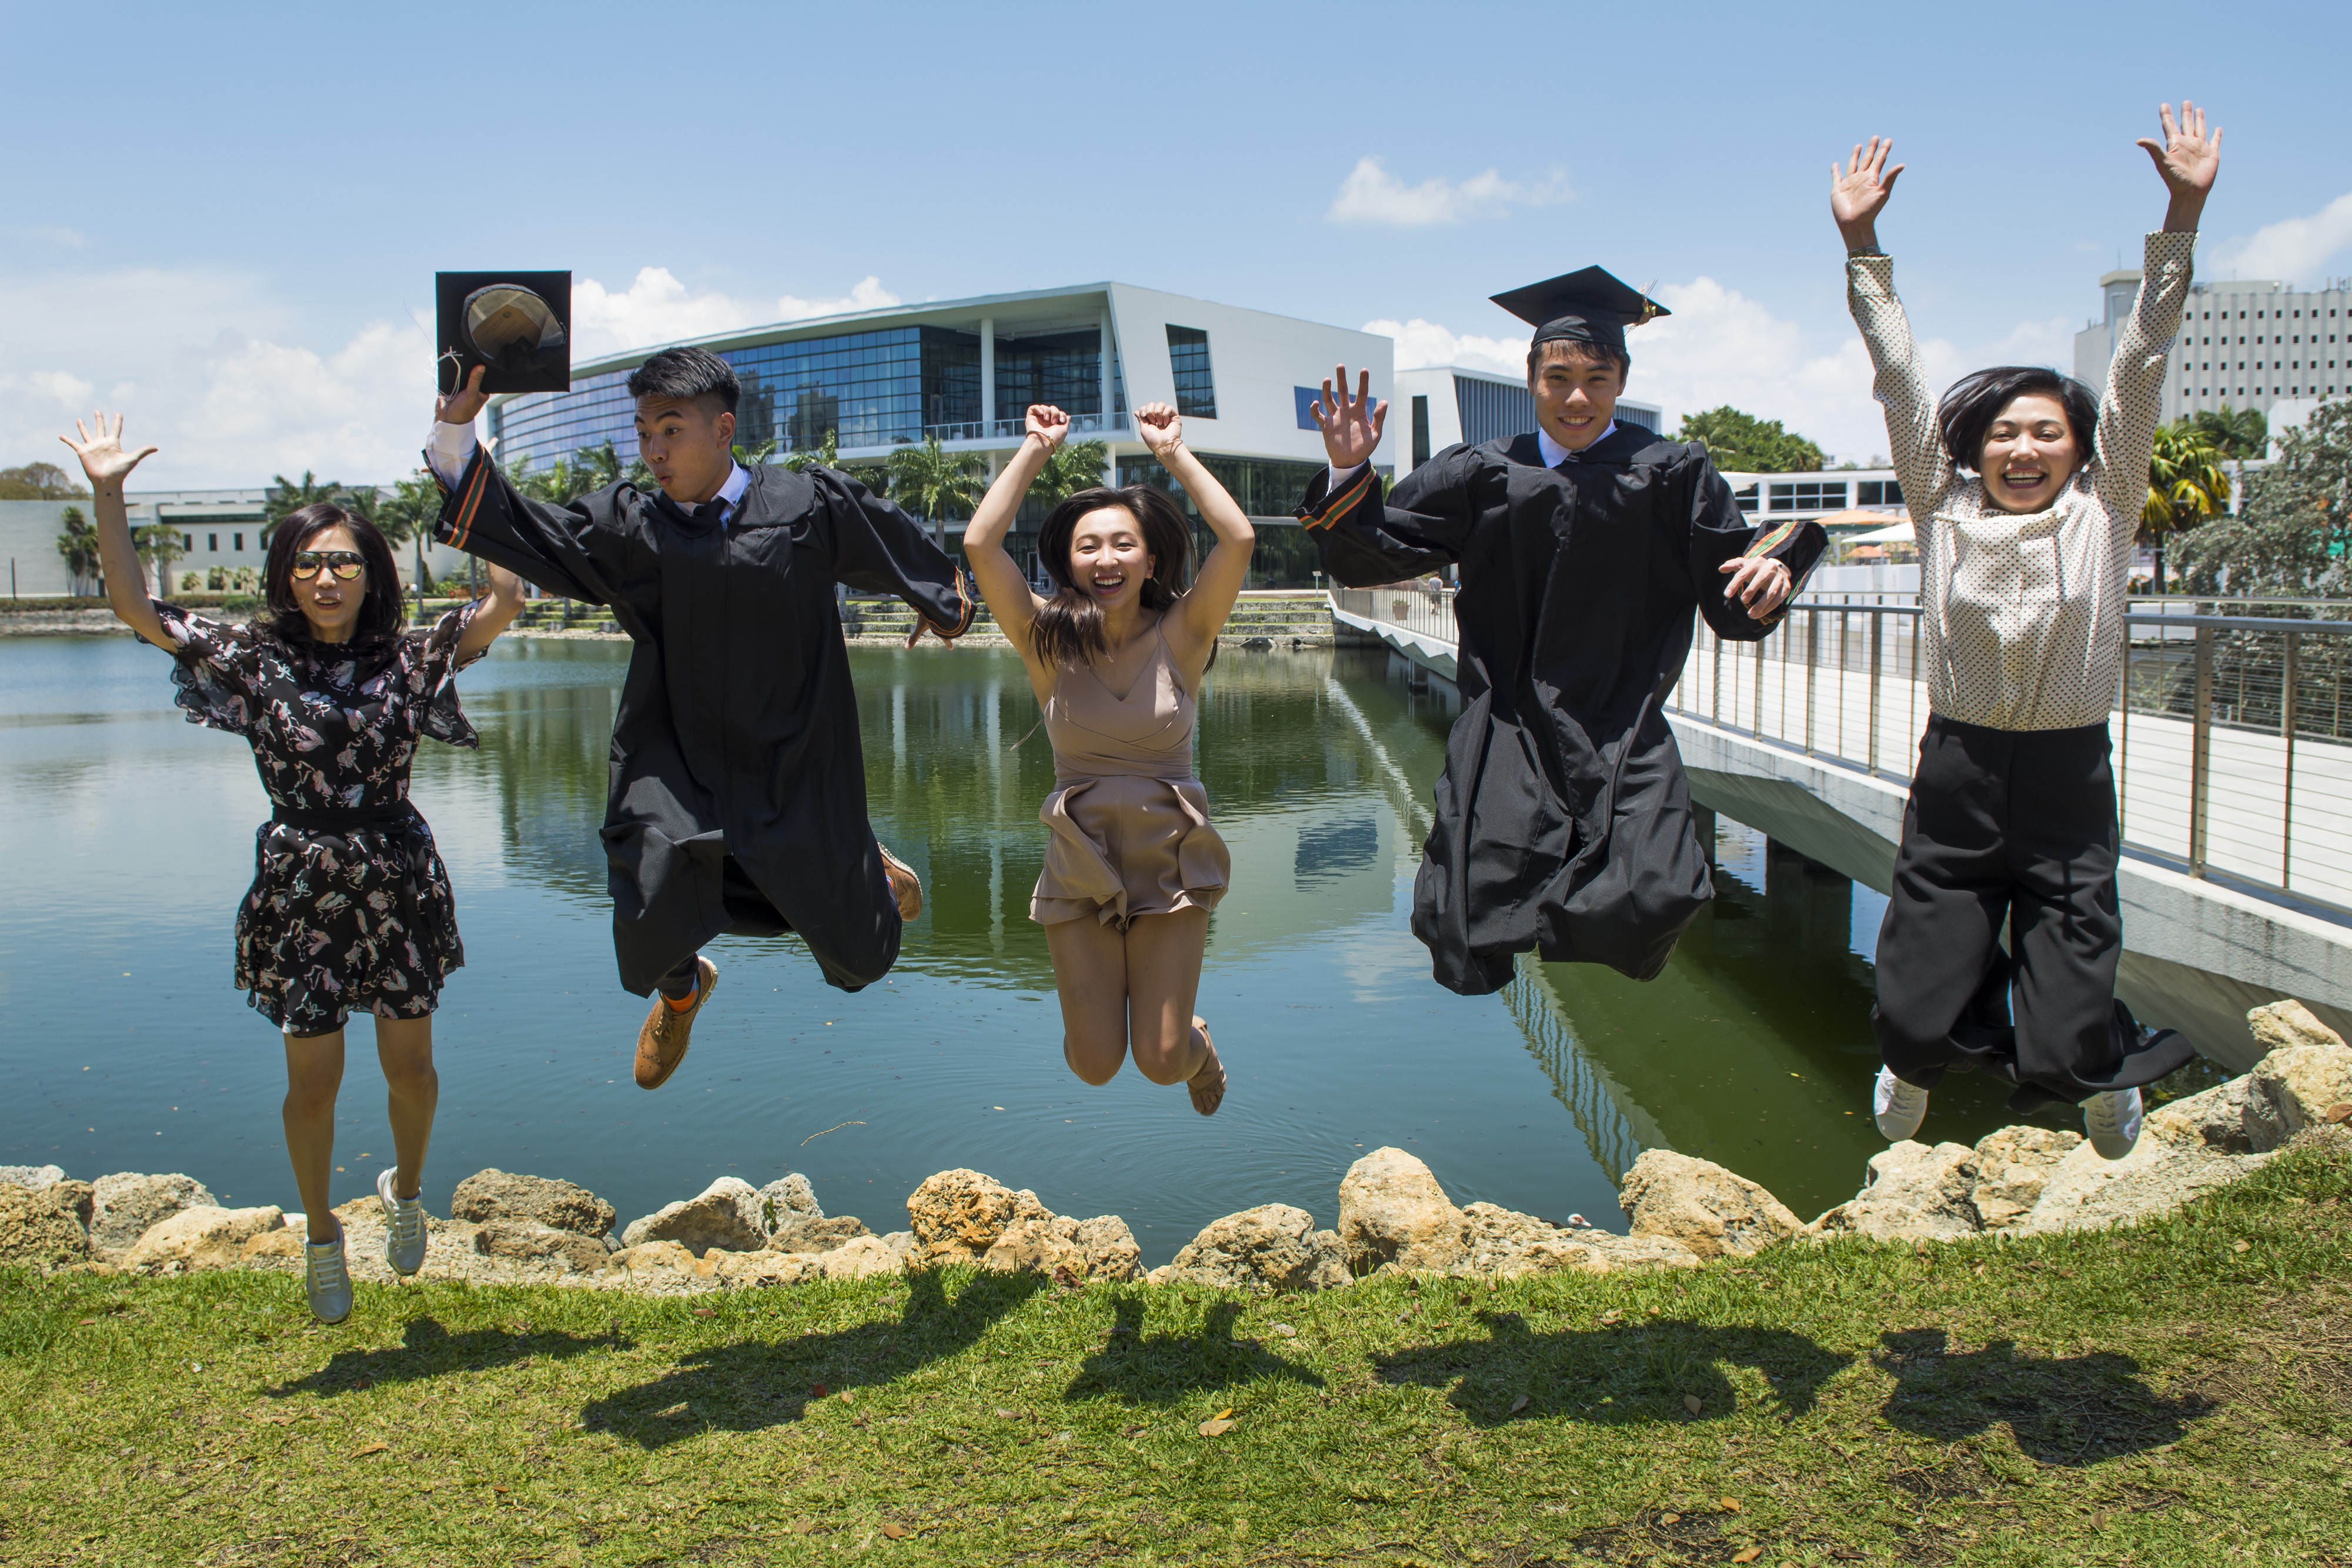 A group of students at the University of Miami celebrating their graduation.